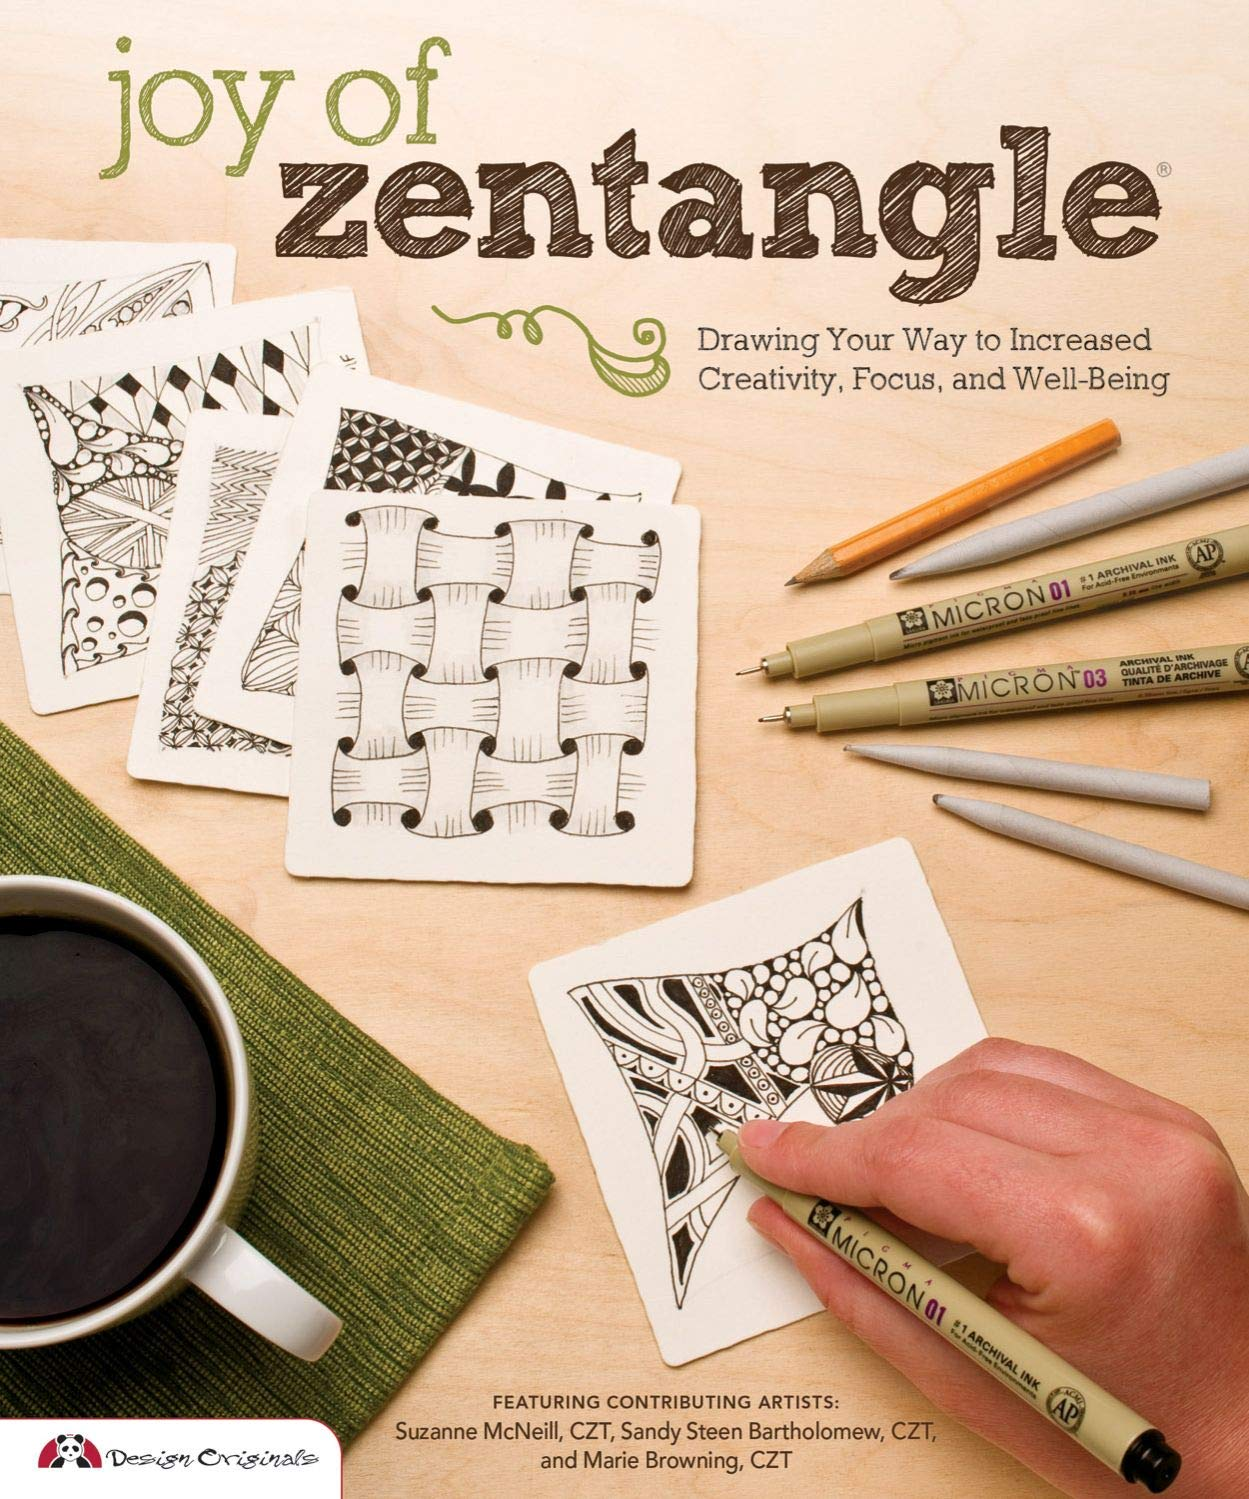 Joy of Zentangle: Drawing Your Way to Increased Creativity, Focus, and Well-Being (Design Originals) Instructions for 101 Tangle Patterns from CZTs Suzanne McNeill, Sandy Steen Bartholomew, & More by Design Originals